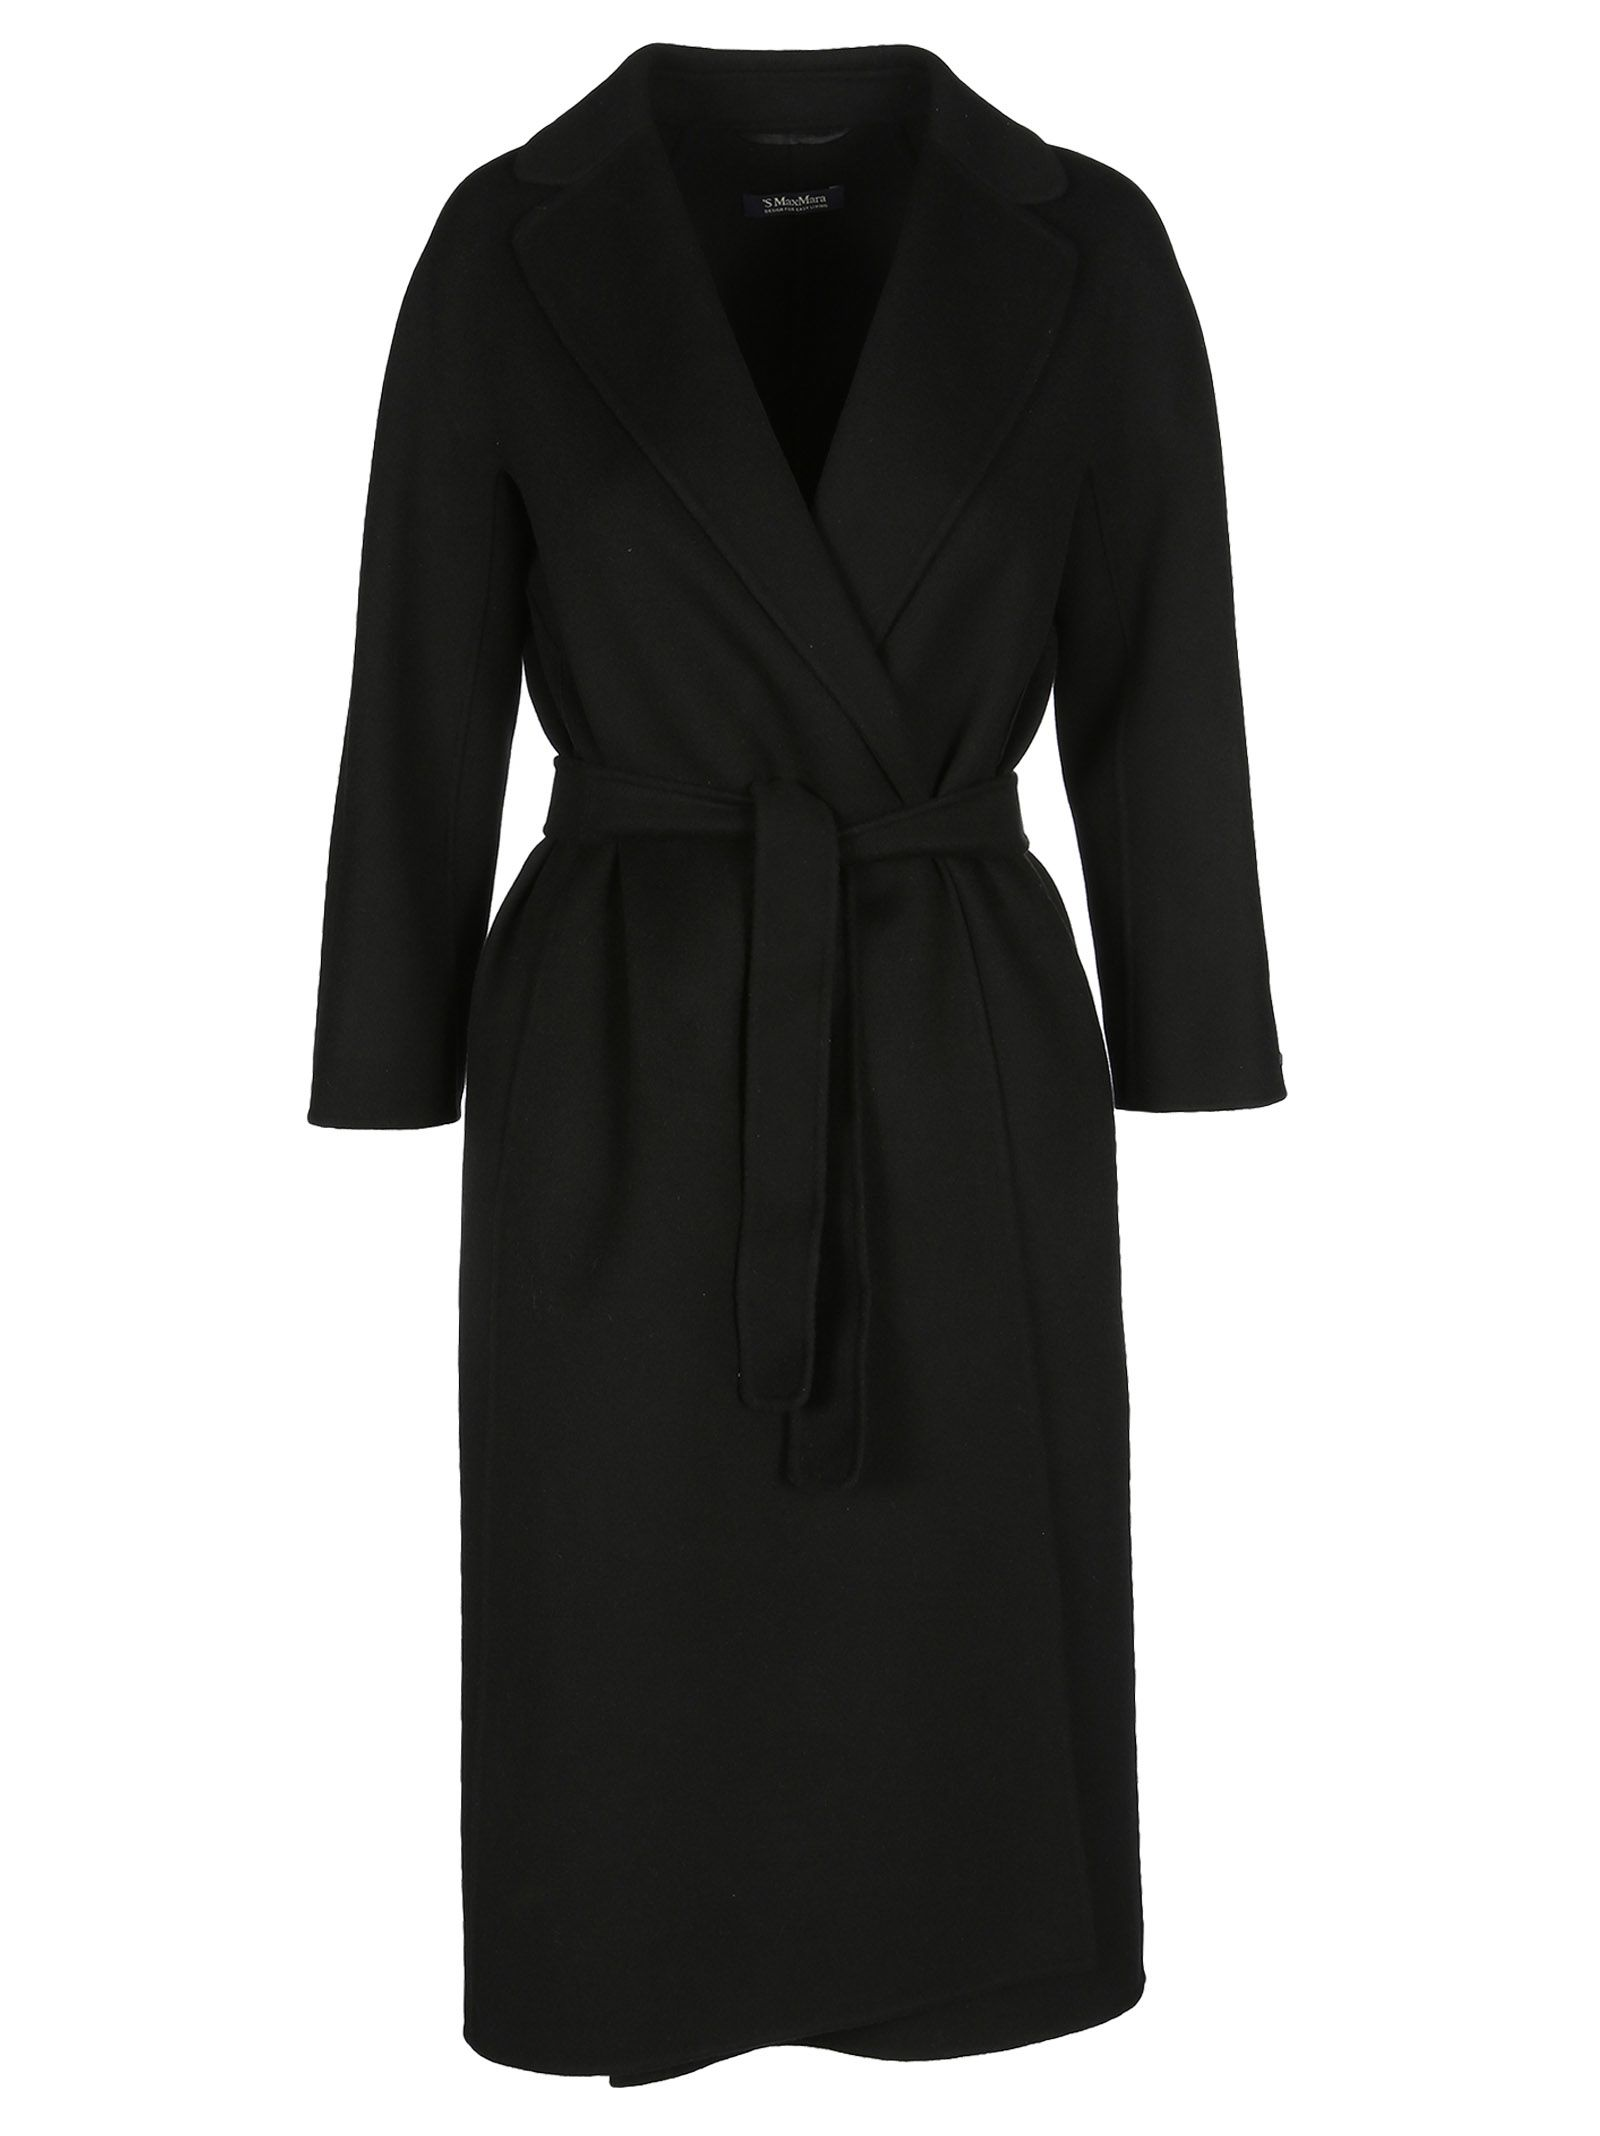 s Max Mara Belted Cocoon Coat